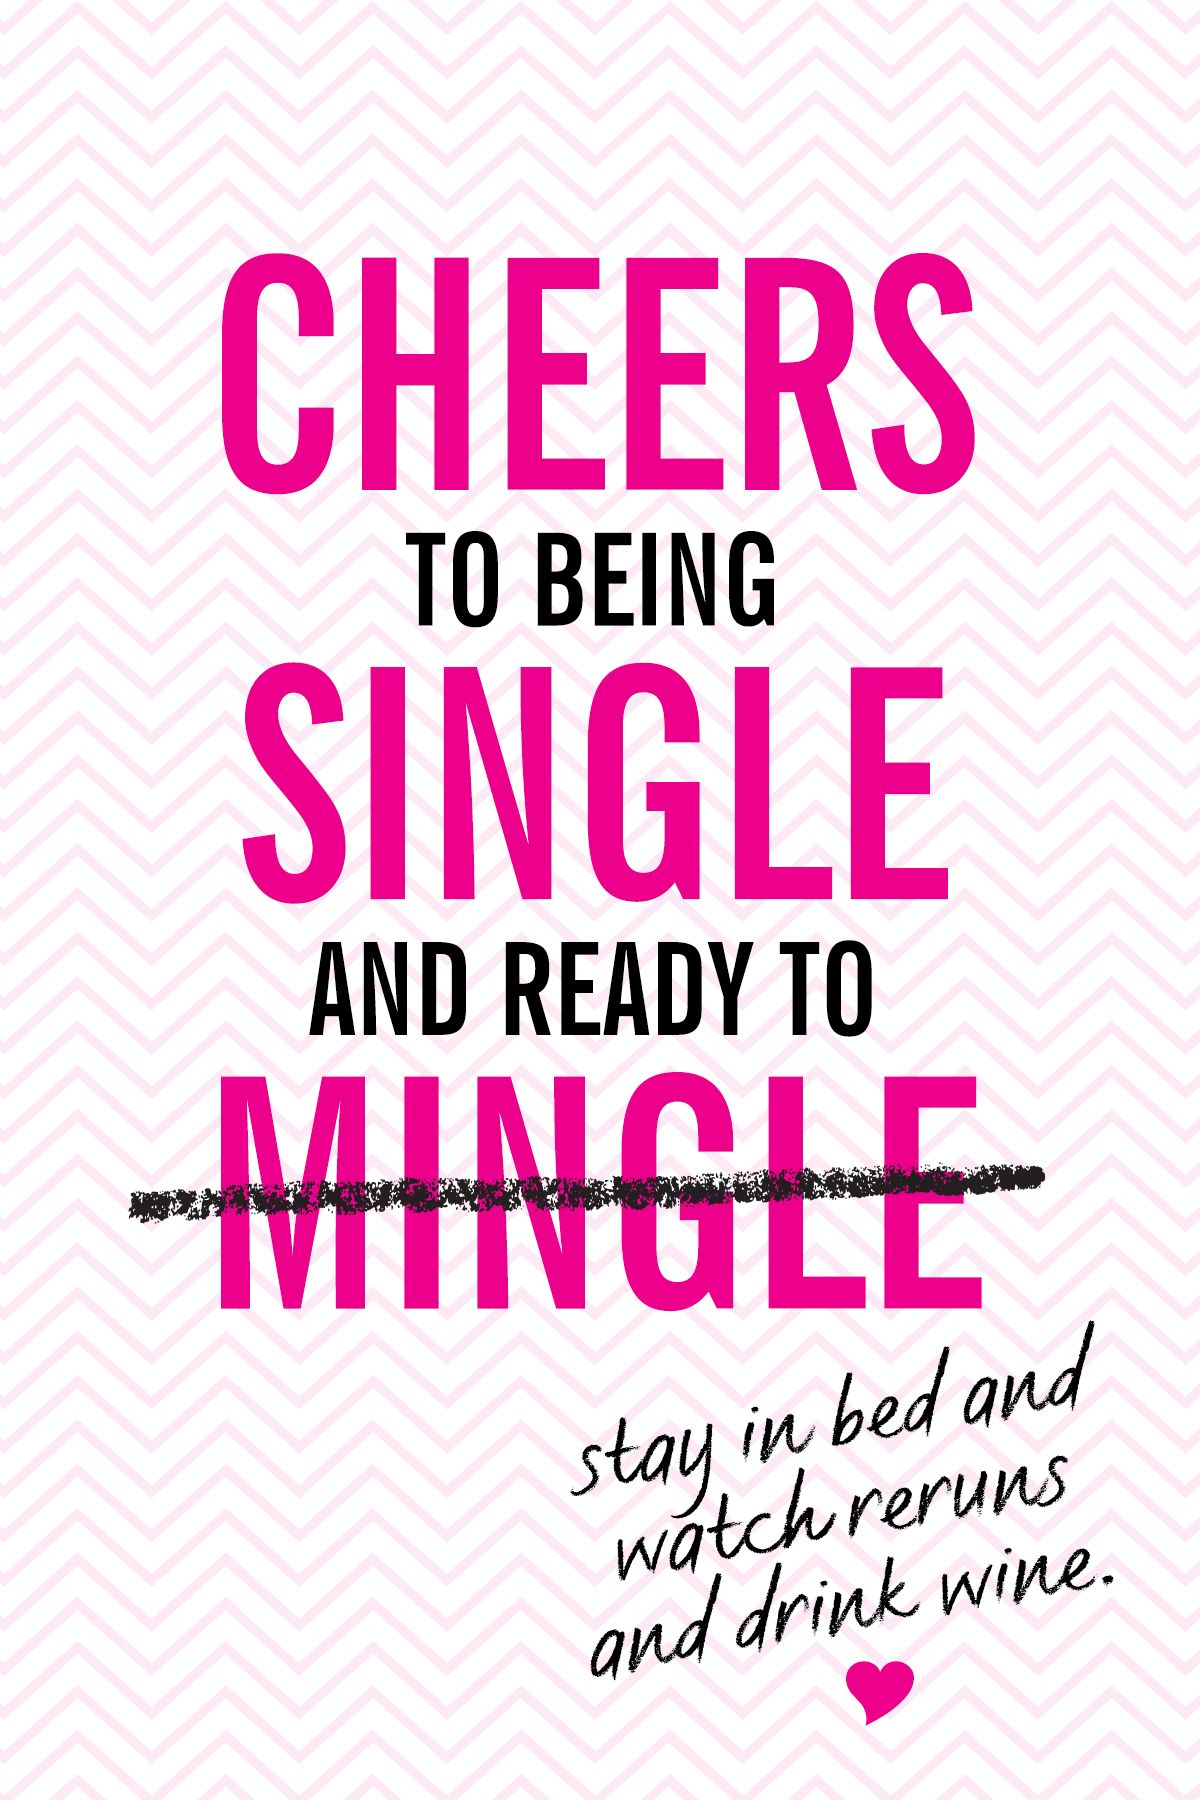 6 Super-Cute Valentine's Day Cards To Give Everyone You